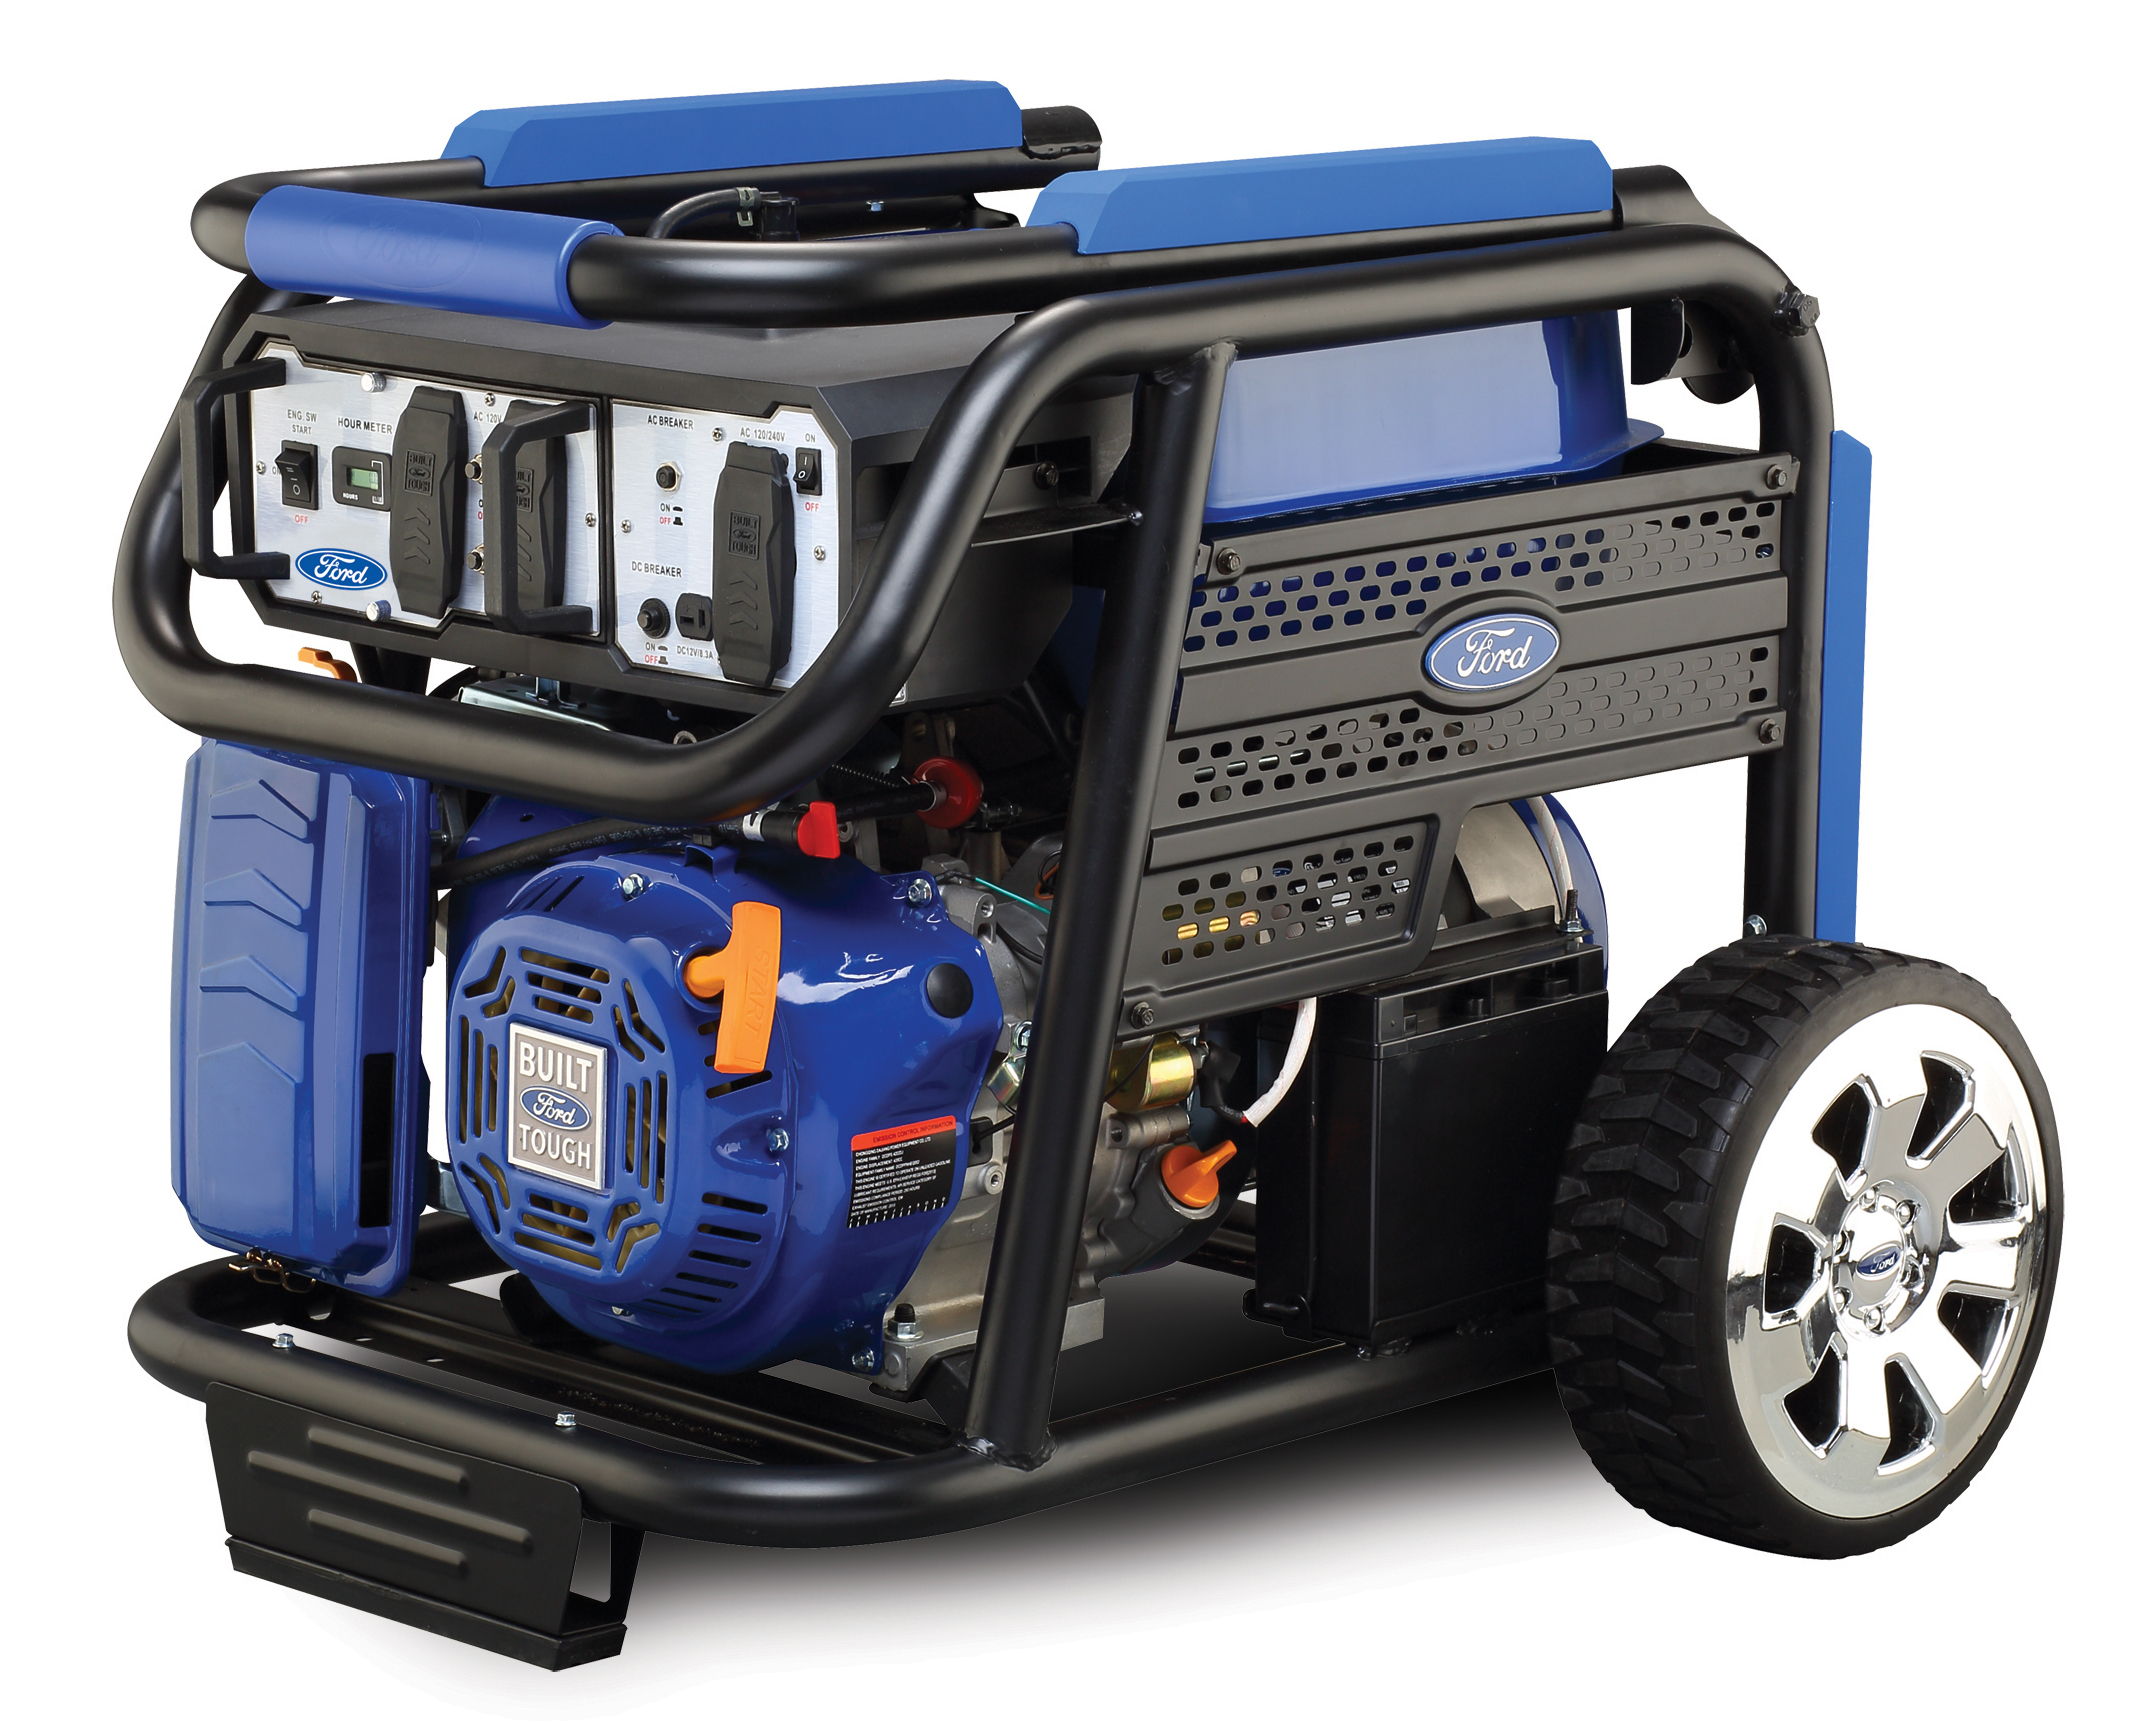 Ford Portable Gas Generator 6250 Watt Electric Start CARB